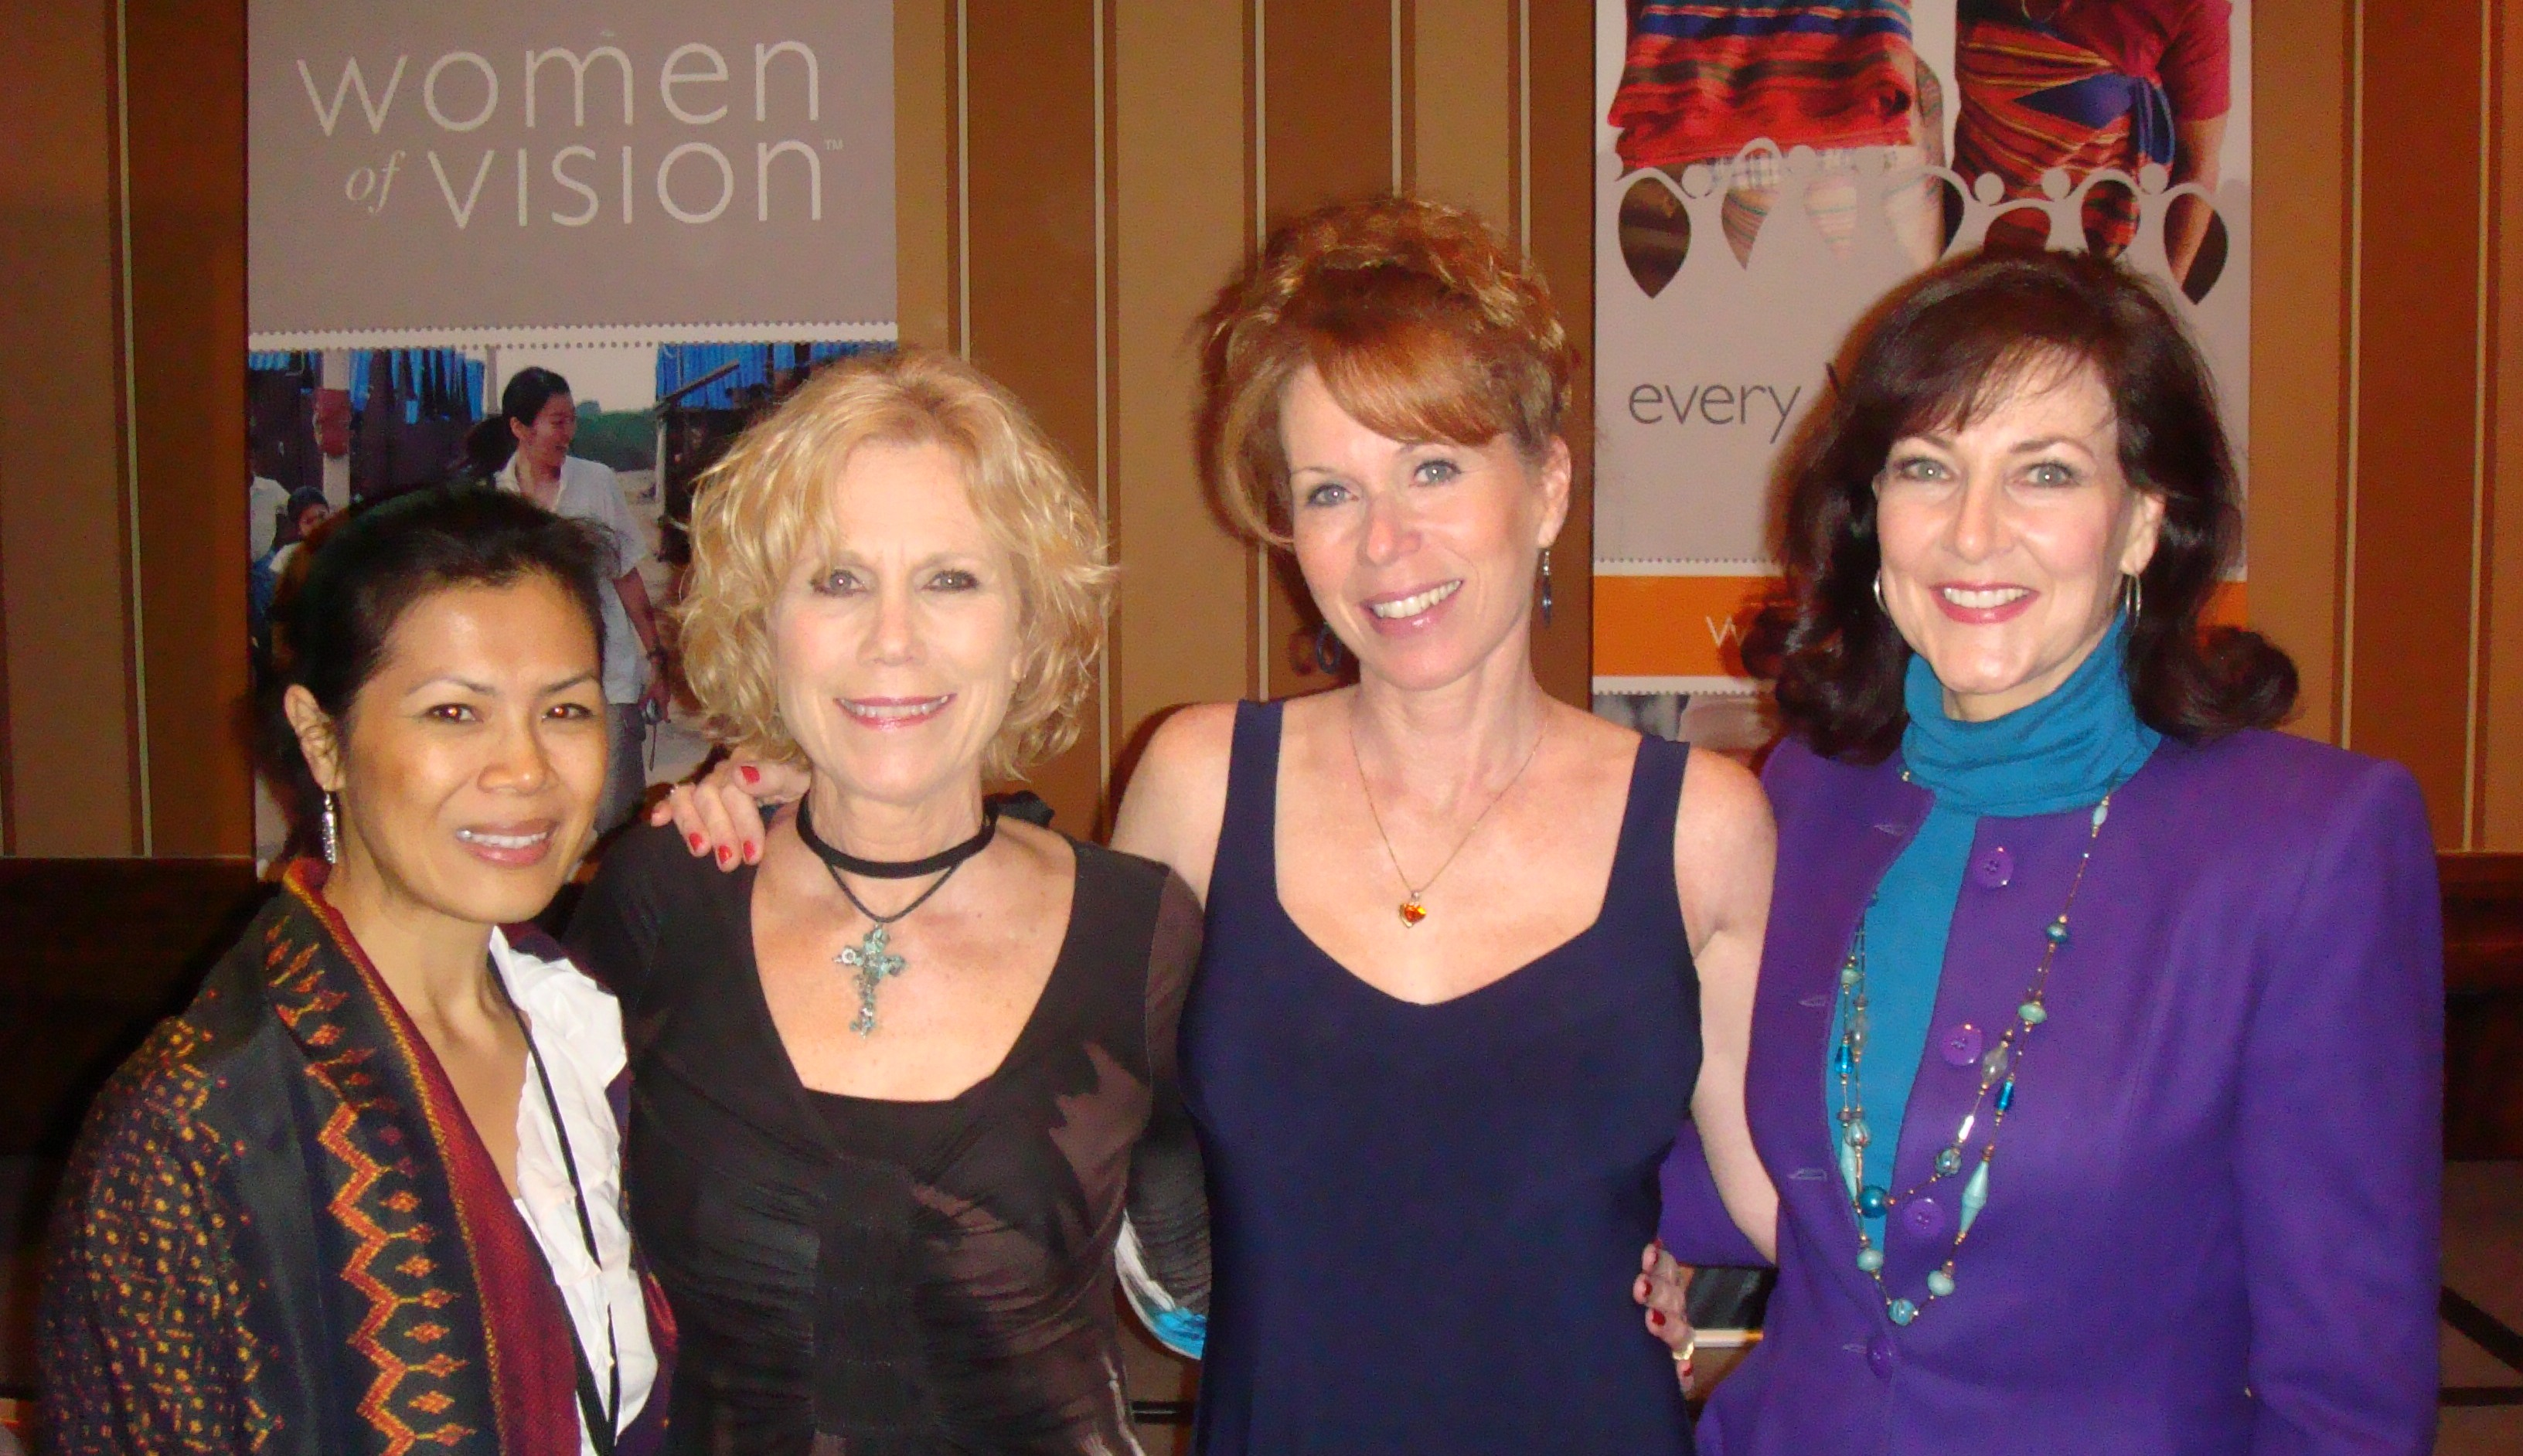 Theary Seng, Marilee Pierce Dunker, Robyn Pierce Women of Vision, March 2010